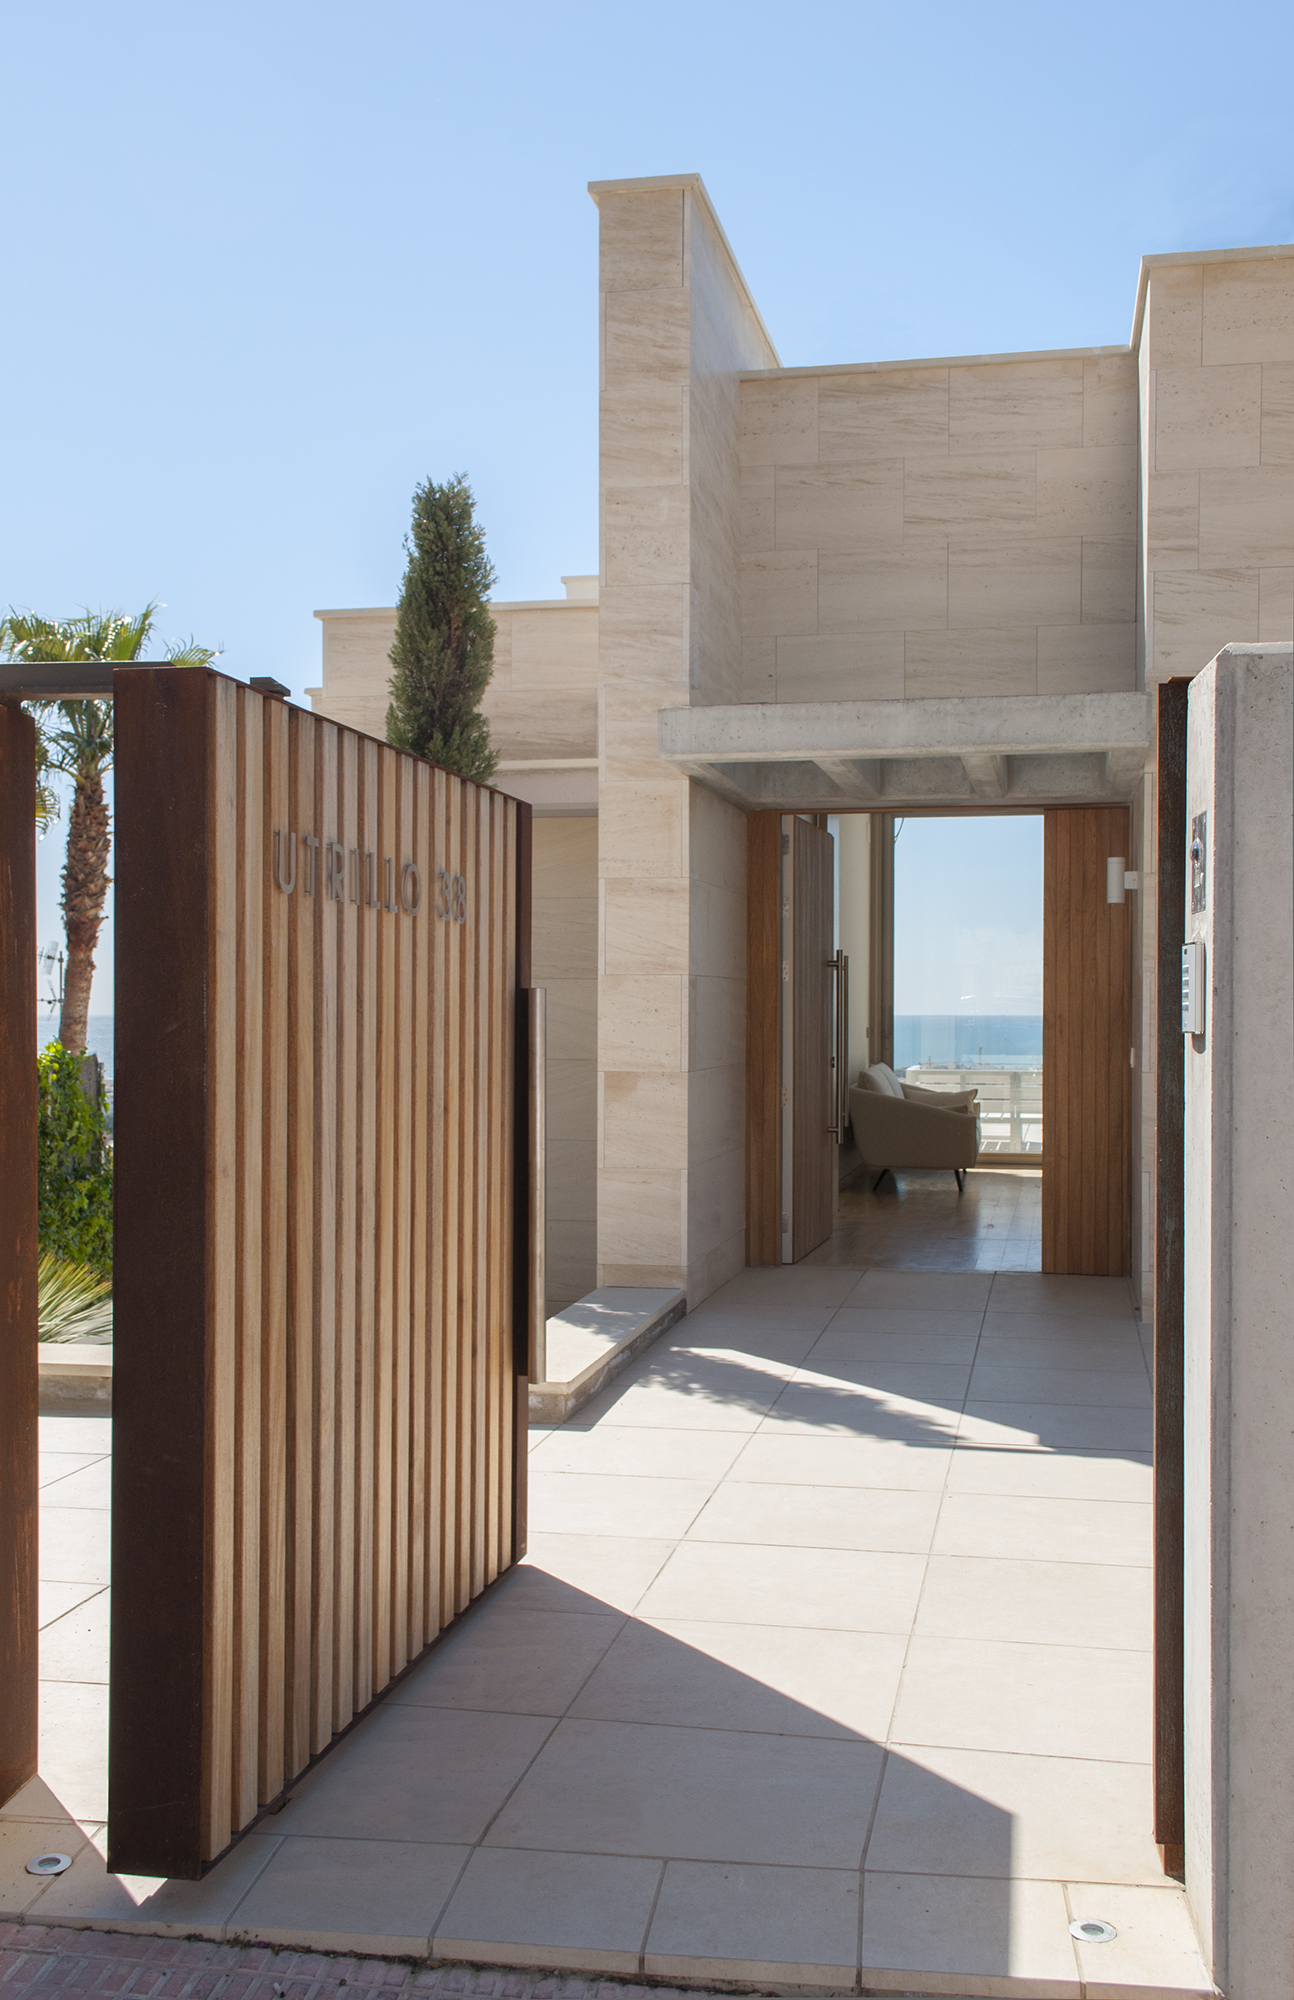 6-rardo-architects-houses-in-sitges-elevation-entrance-wood-fence-sea-view